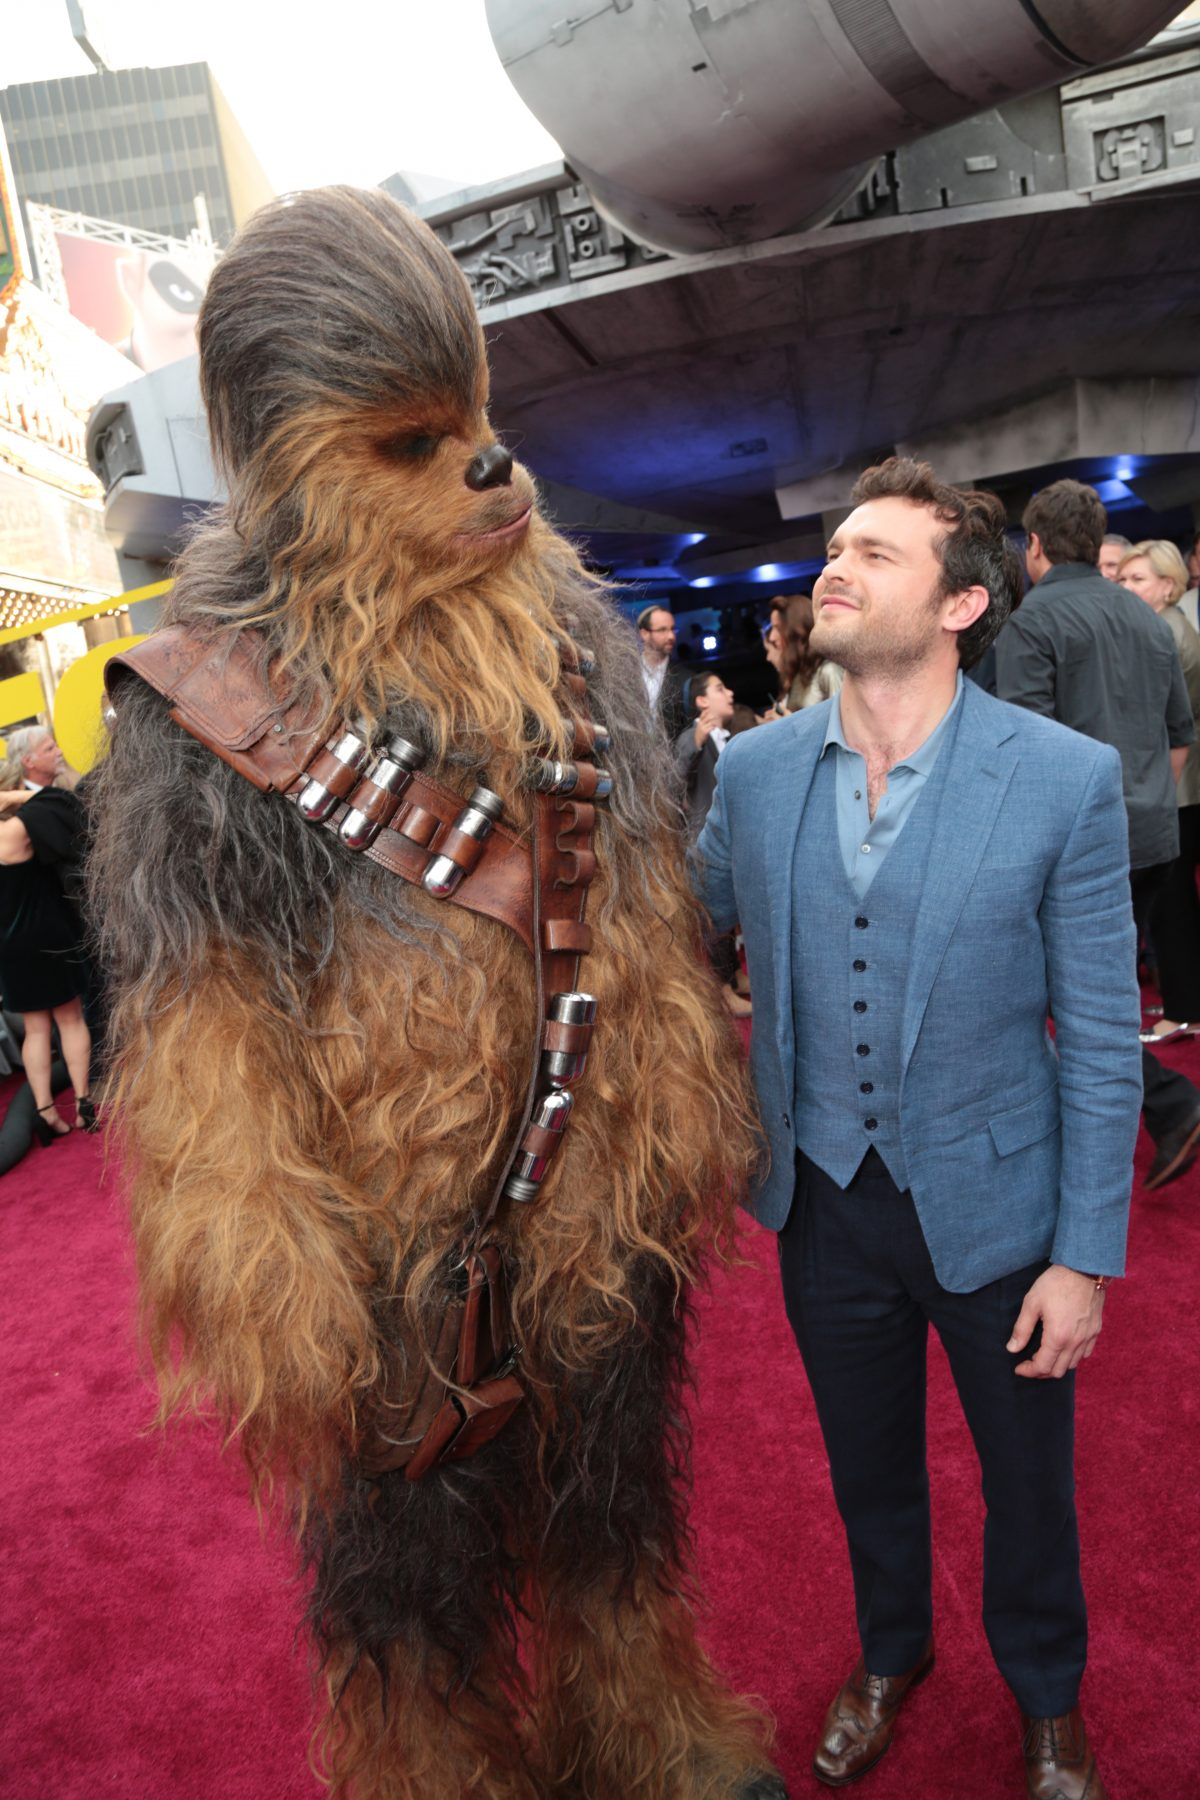 Chewbacca Actor Star Wars Solo Joonas Suotamo